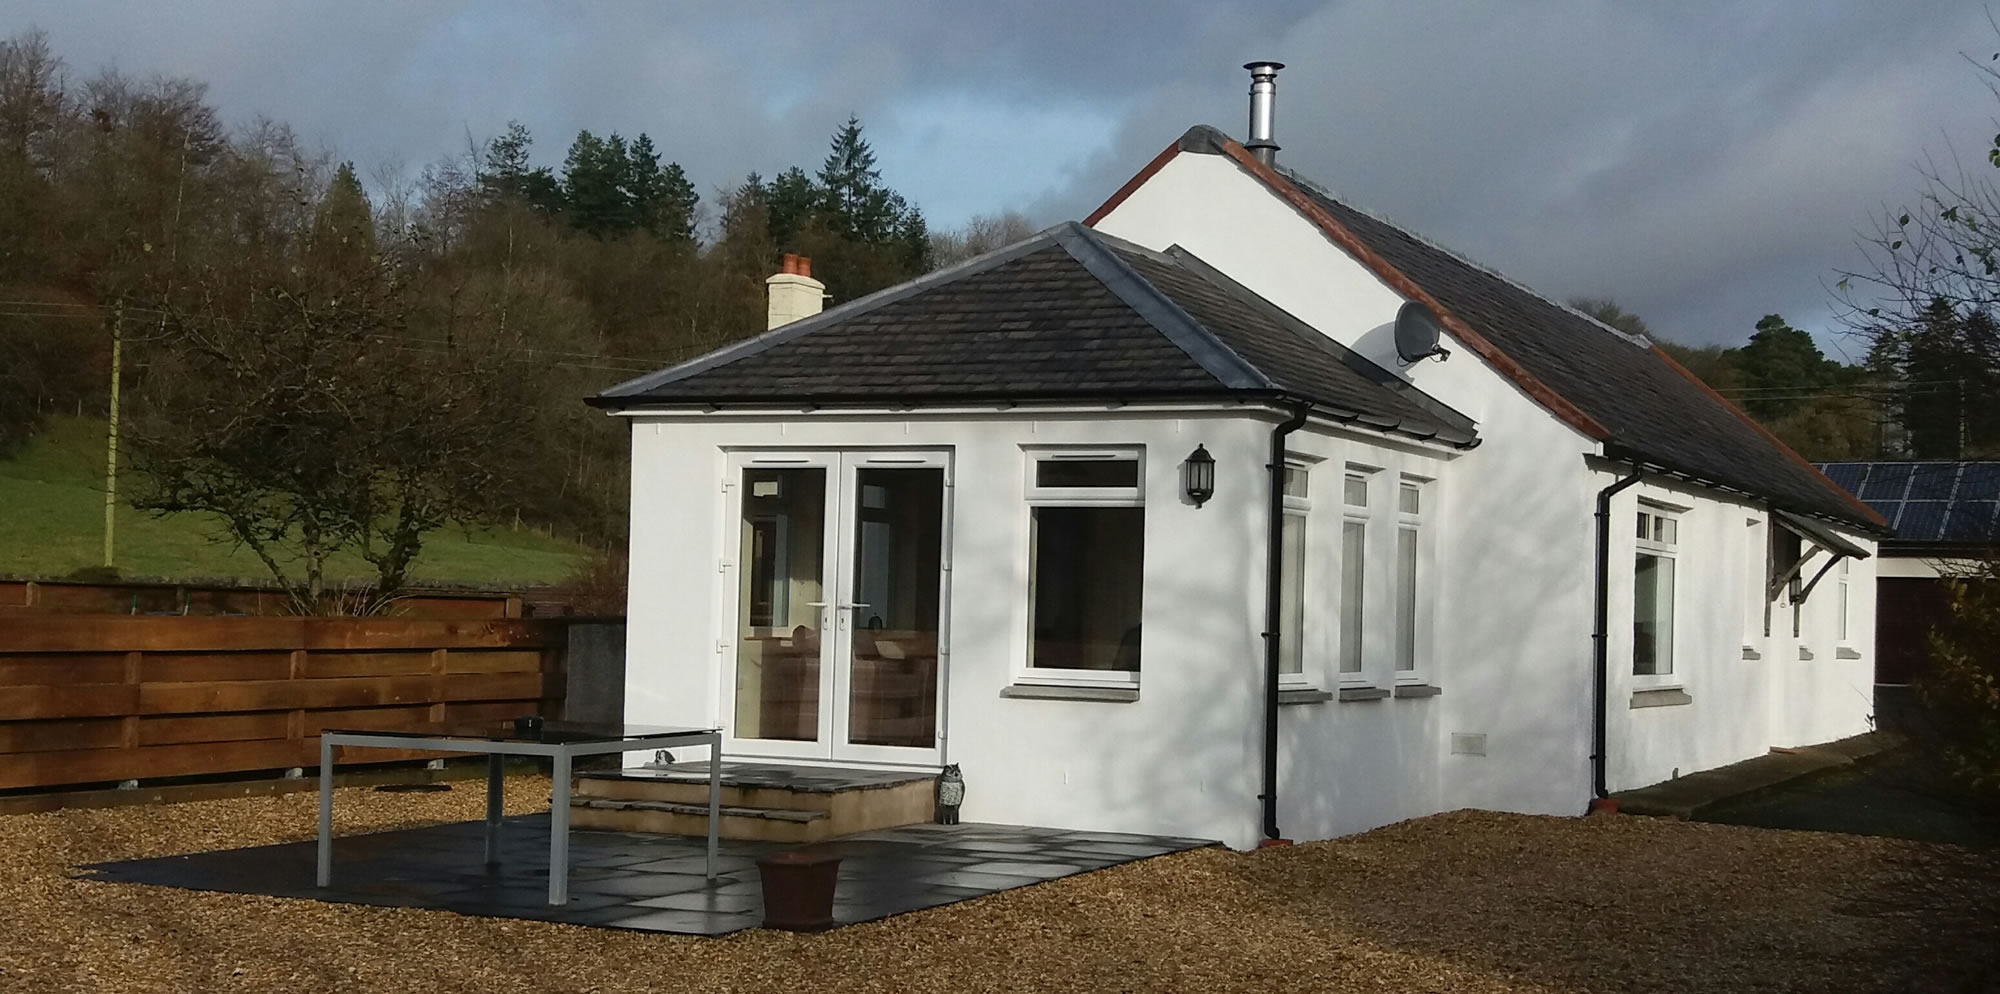 Self catering holiday cottage Dumfries and Galloway, Southern Scotland